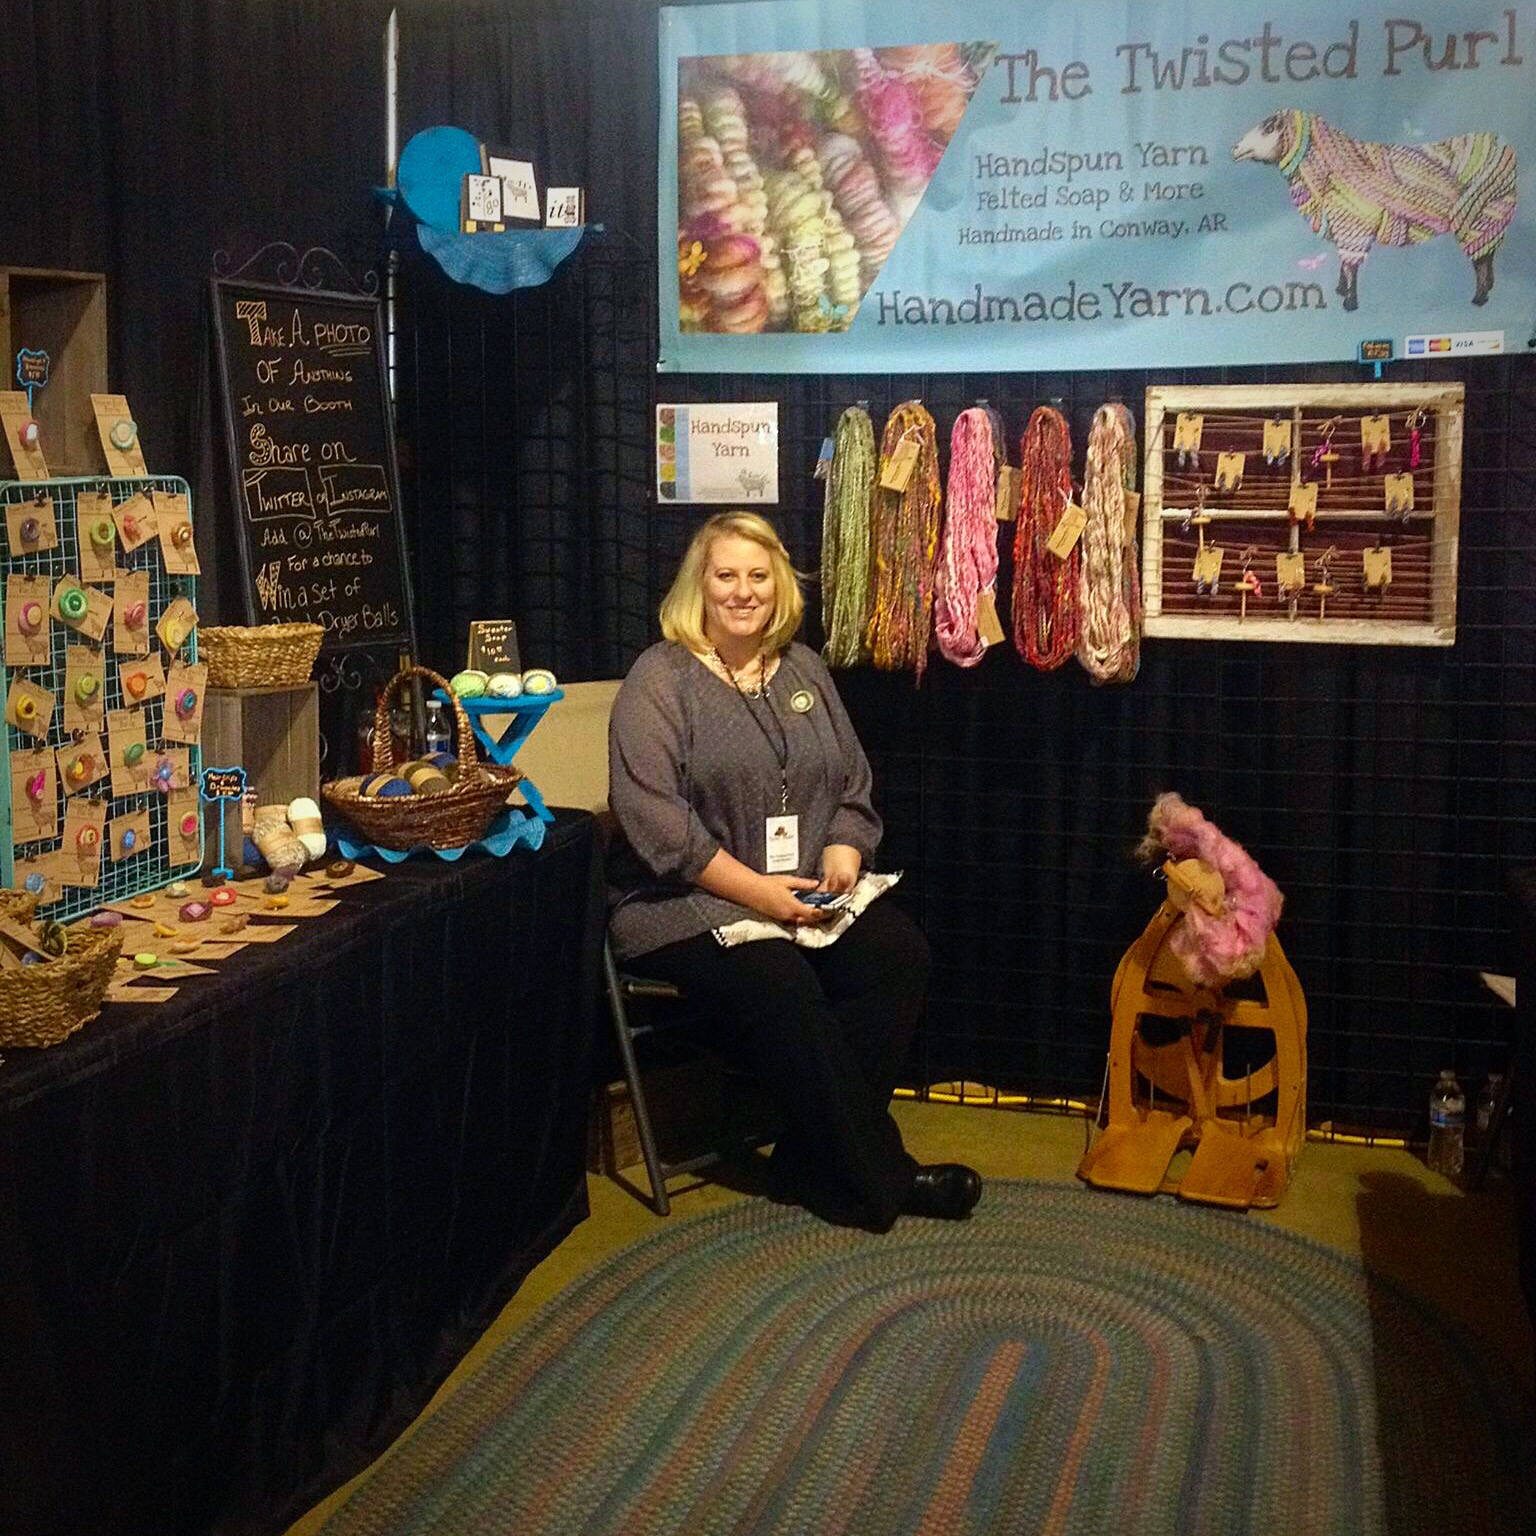 Cyndi Minister sitting in Twisted Purl Booth